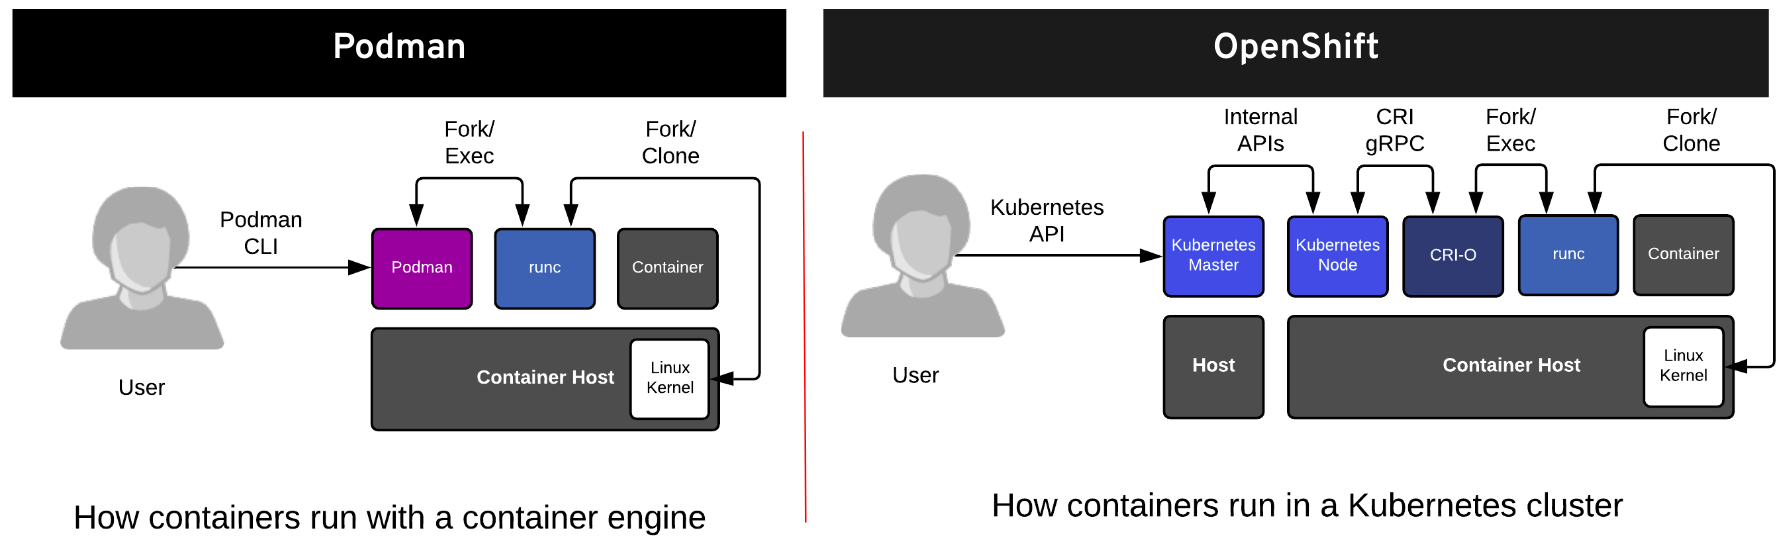 Figure 1: how containers run with a container image vs. Kubernetes